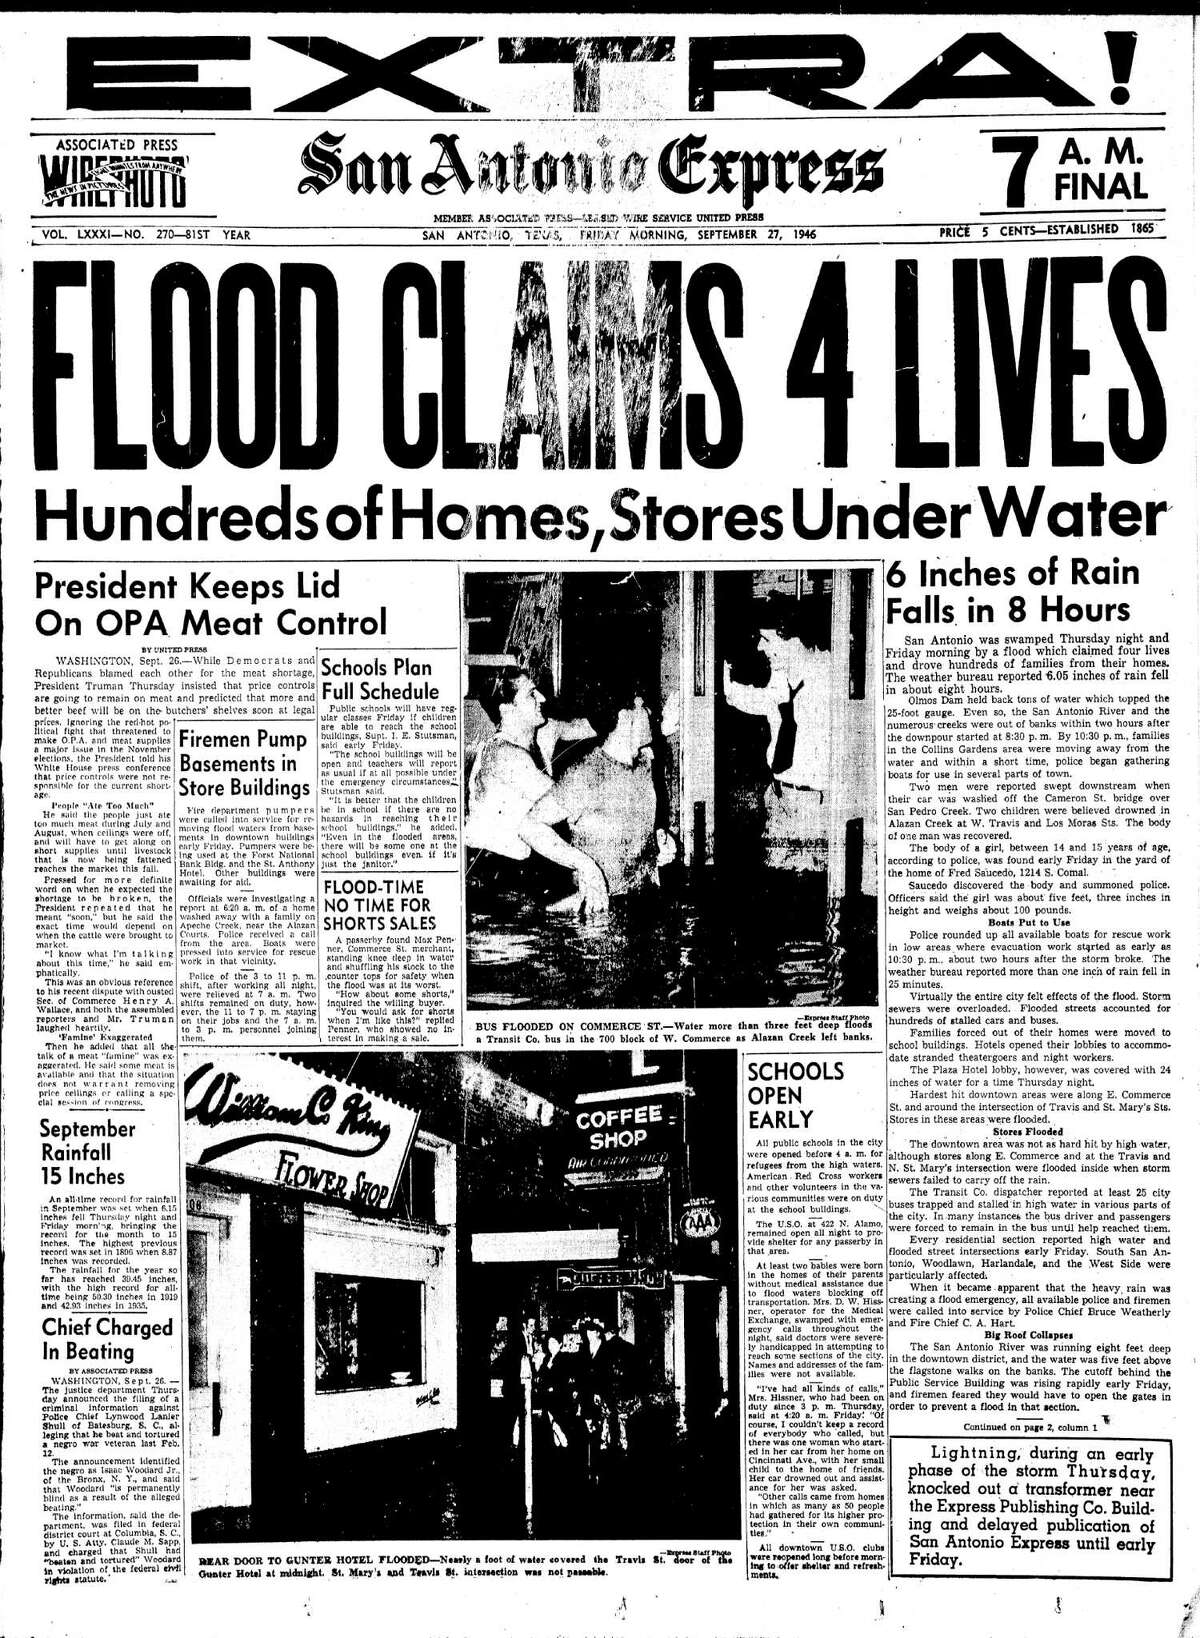 This Sept. 27, 1946, EXTRA for the San Antonio Express included two photos and several stories on A1 about the local flood that claimed four lives and drove hundreds from their homes.